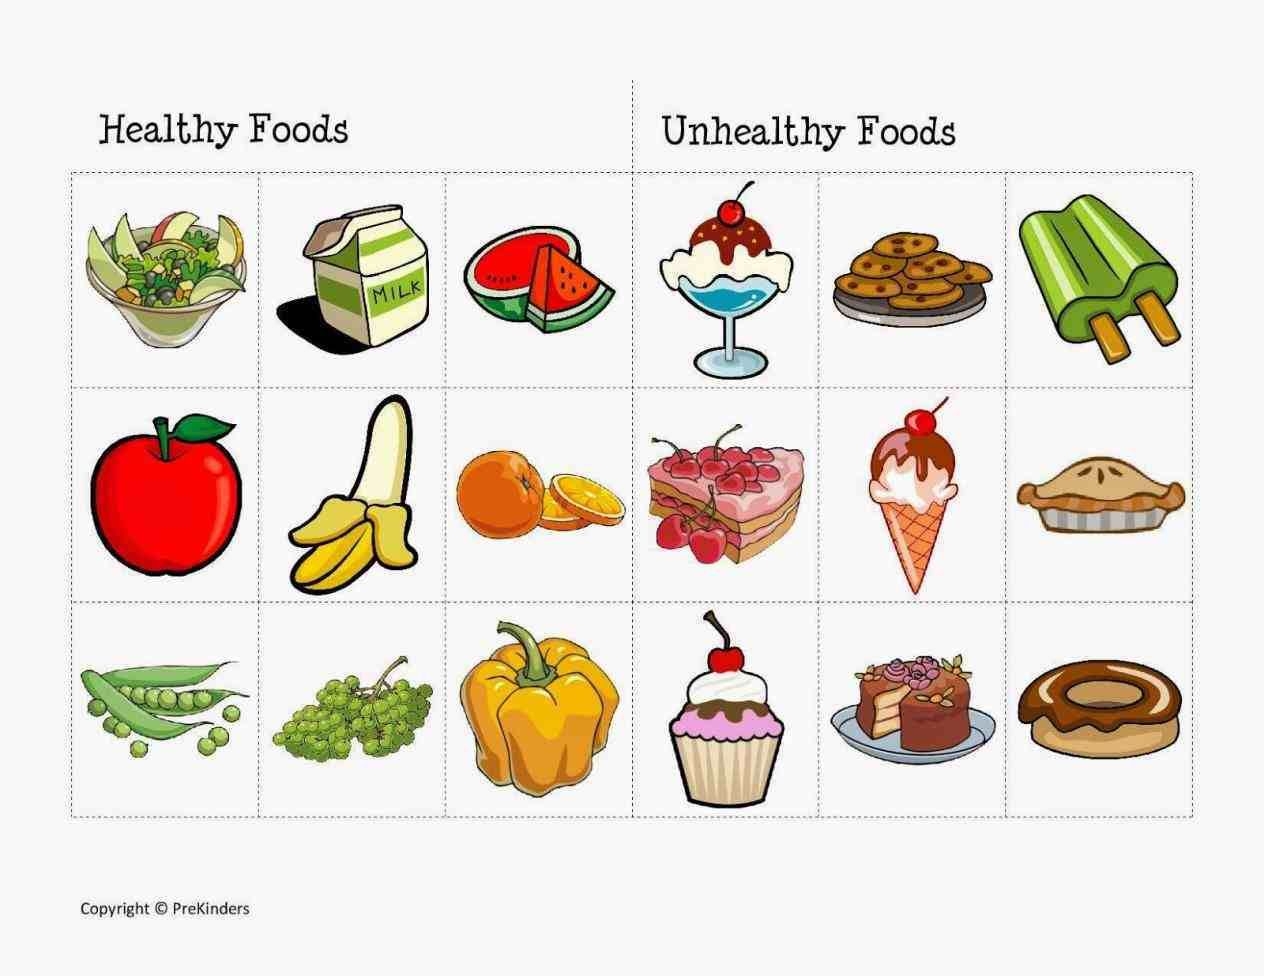 S Unhealthy Food Vs Healthy Food Clipart Worksheet Download Free Best Quality On Healthy And Unhealthy Food Healthy Food Activities Healthy Meals For Kids [ 976 x 1264 Pixel ]